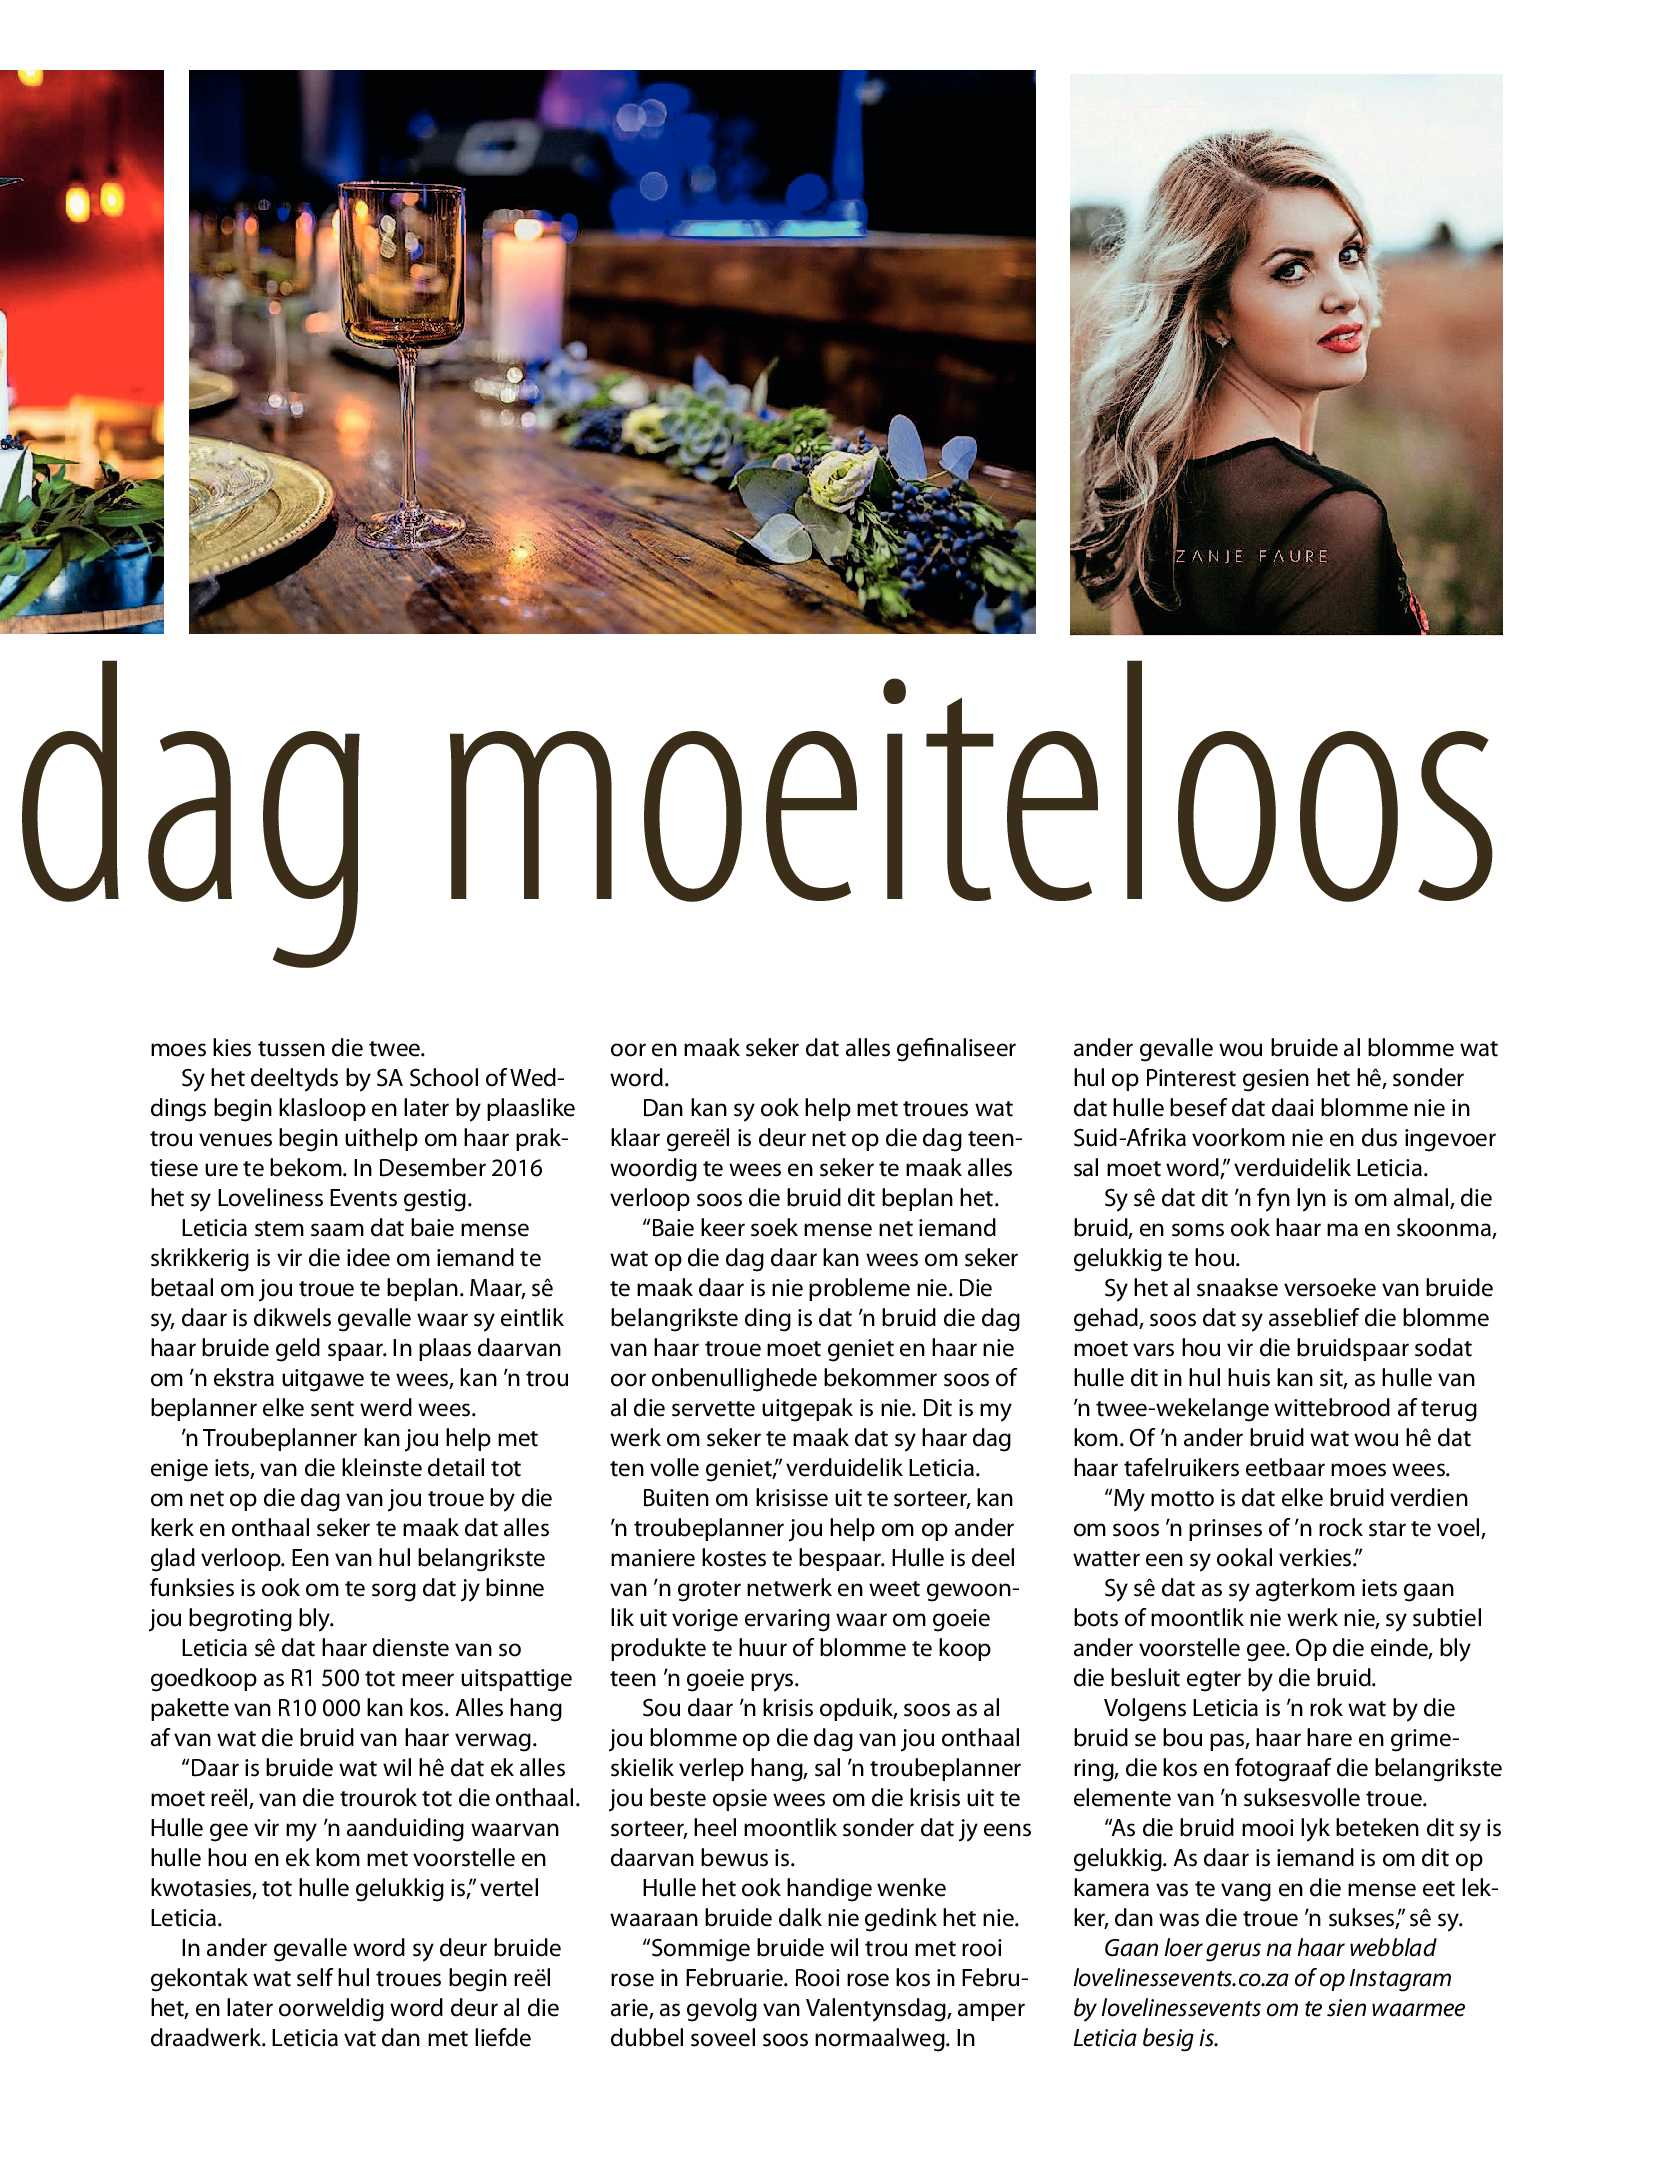 get-middelburg-june-2018-epapers-page-19